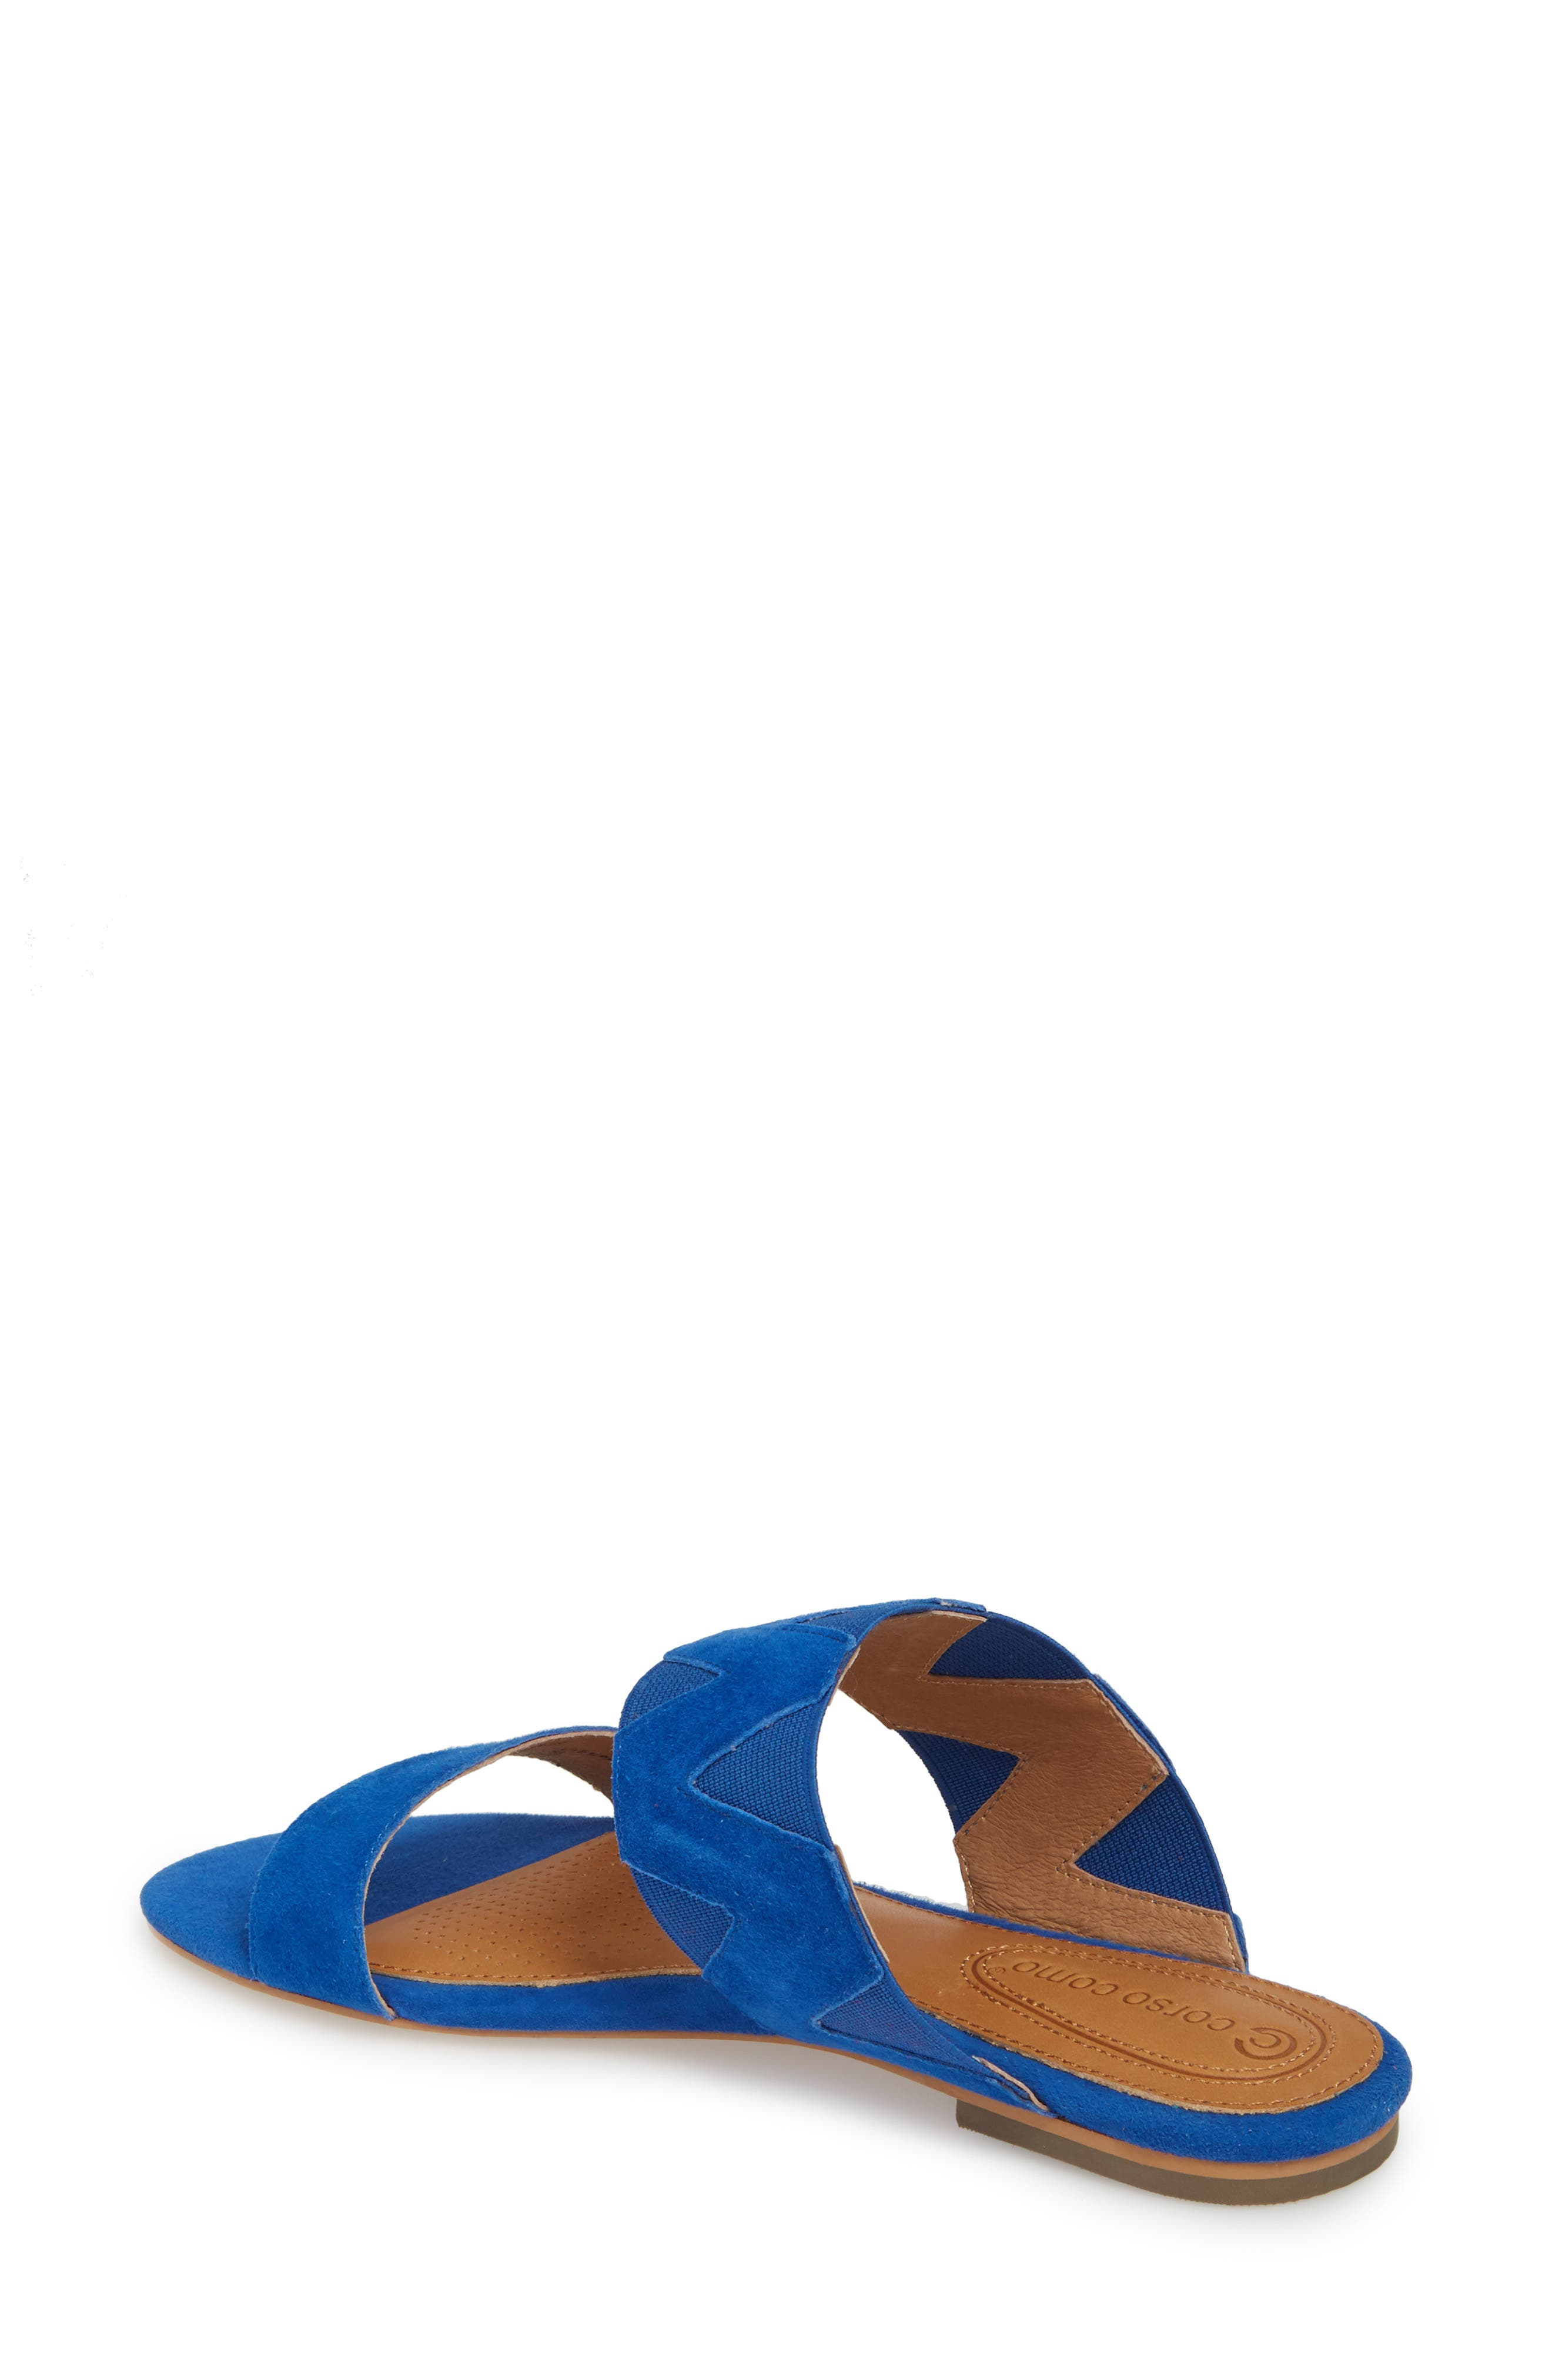 Vickee Double Band Sandal,                             Alternate thumbnail 2, color,                             Royal Blue Leather